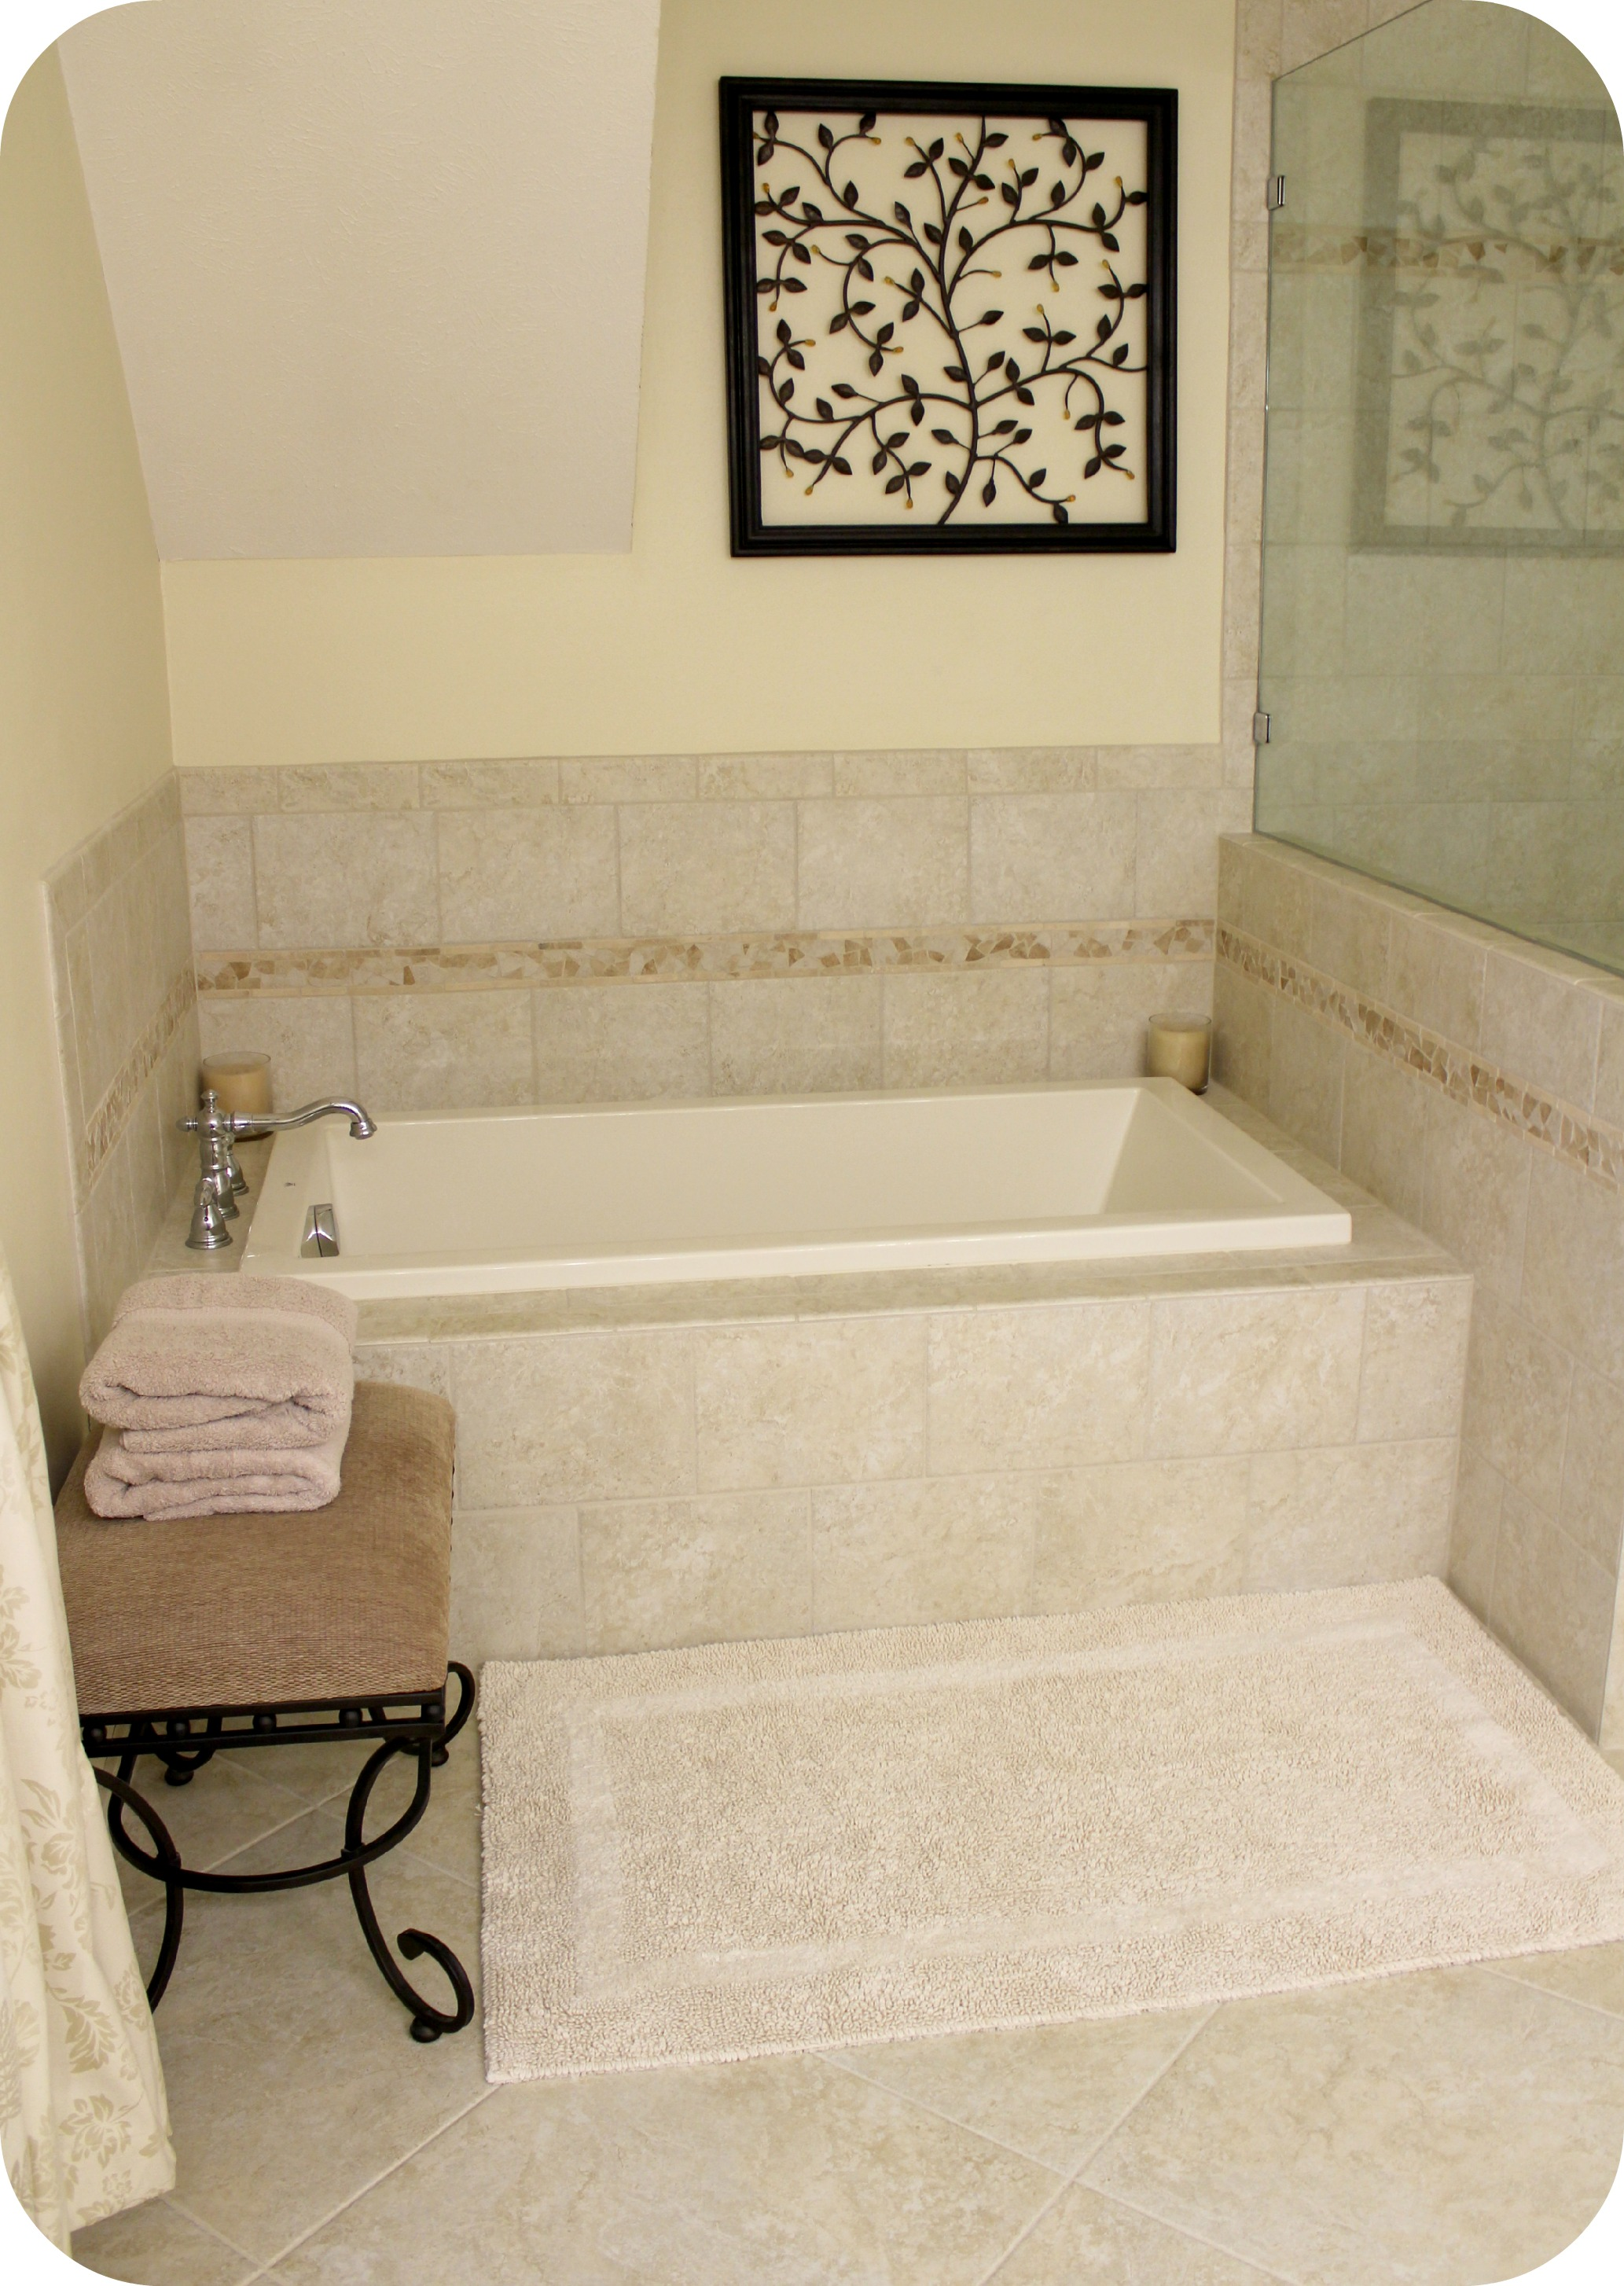 The master bath remodel project inside nanabread 39 s head - Soaking tubs for small bathrooms ...